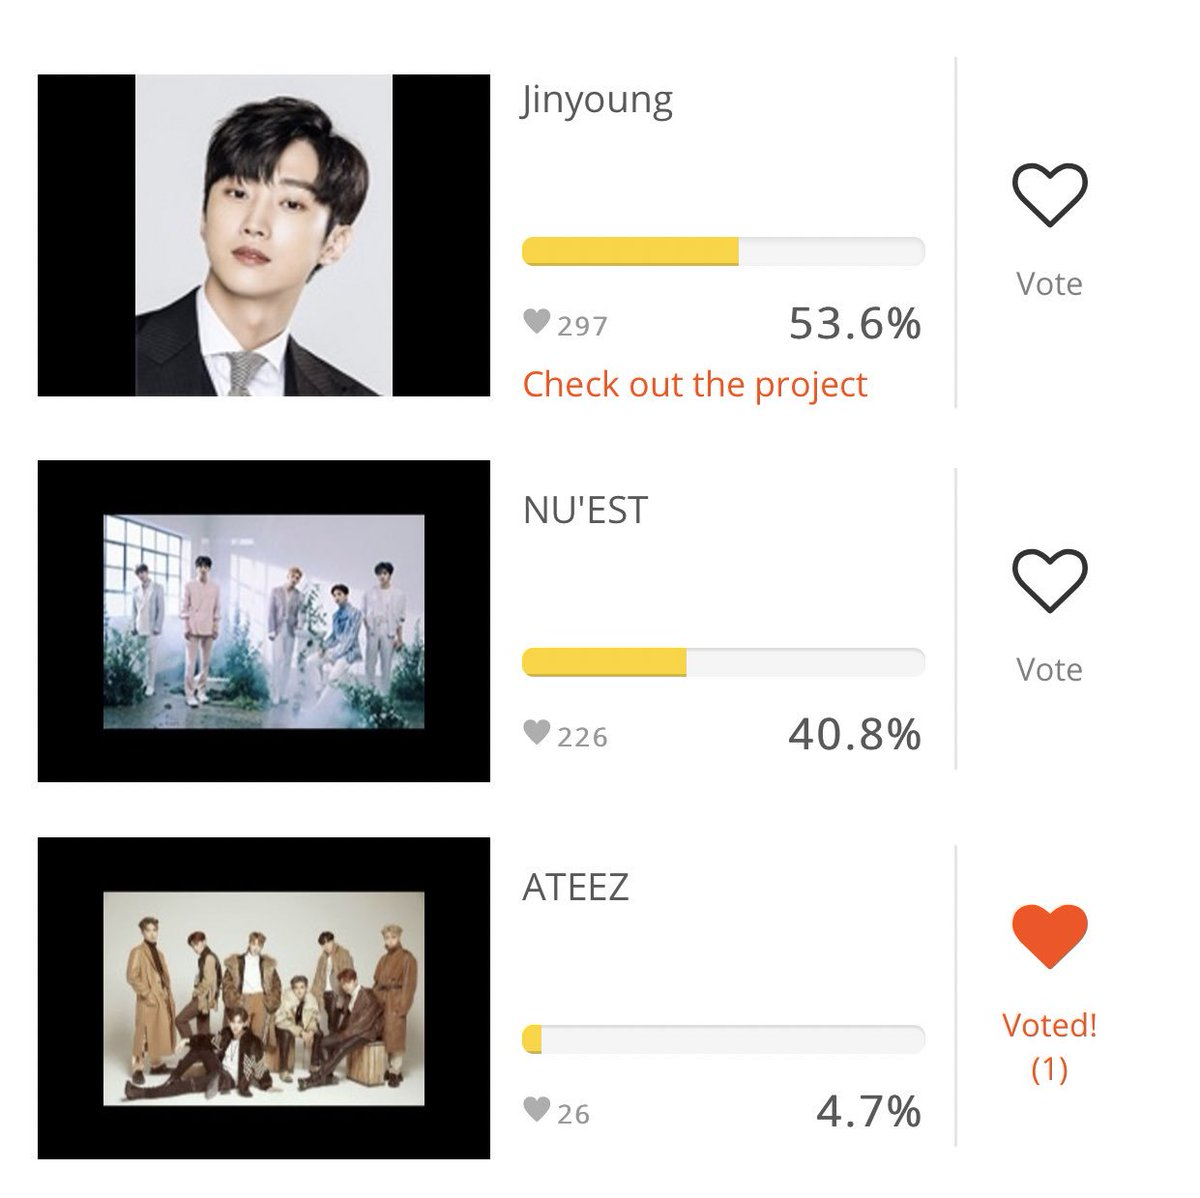 🚨ATTENTION ATINY🚨 💛STOP what you're doing and click the link to vote for ATEEZ! 💙 https://www.makestar.co/polls?locale=en  ❤️IF @ATEEZofficial win they will get their own cola commercial!  Please share it would make them so happy!